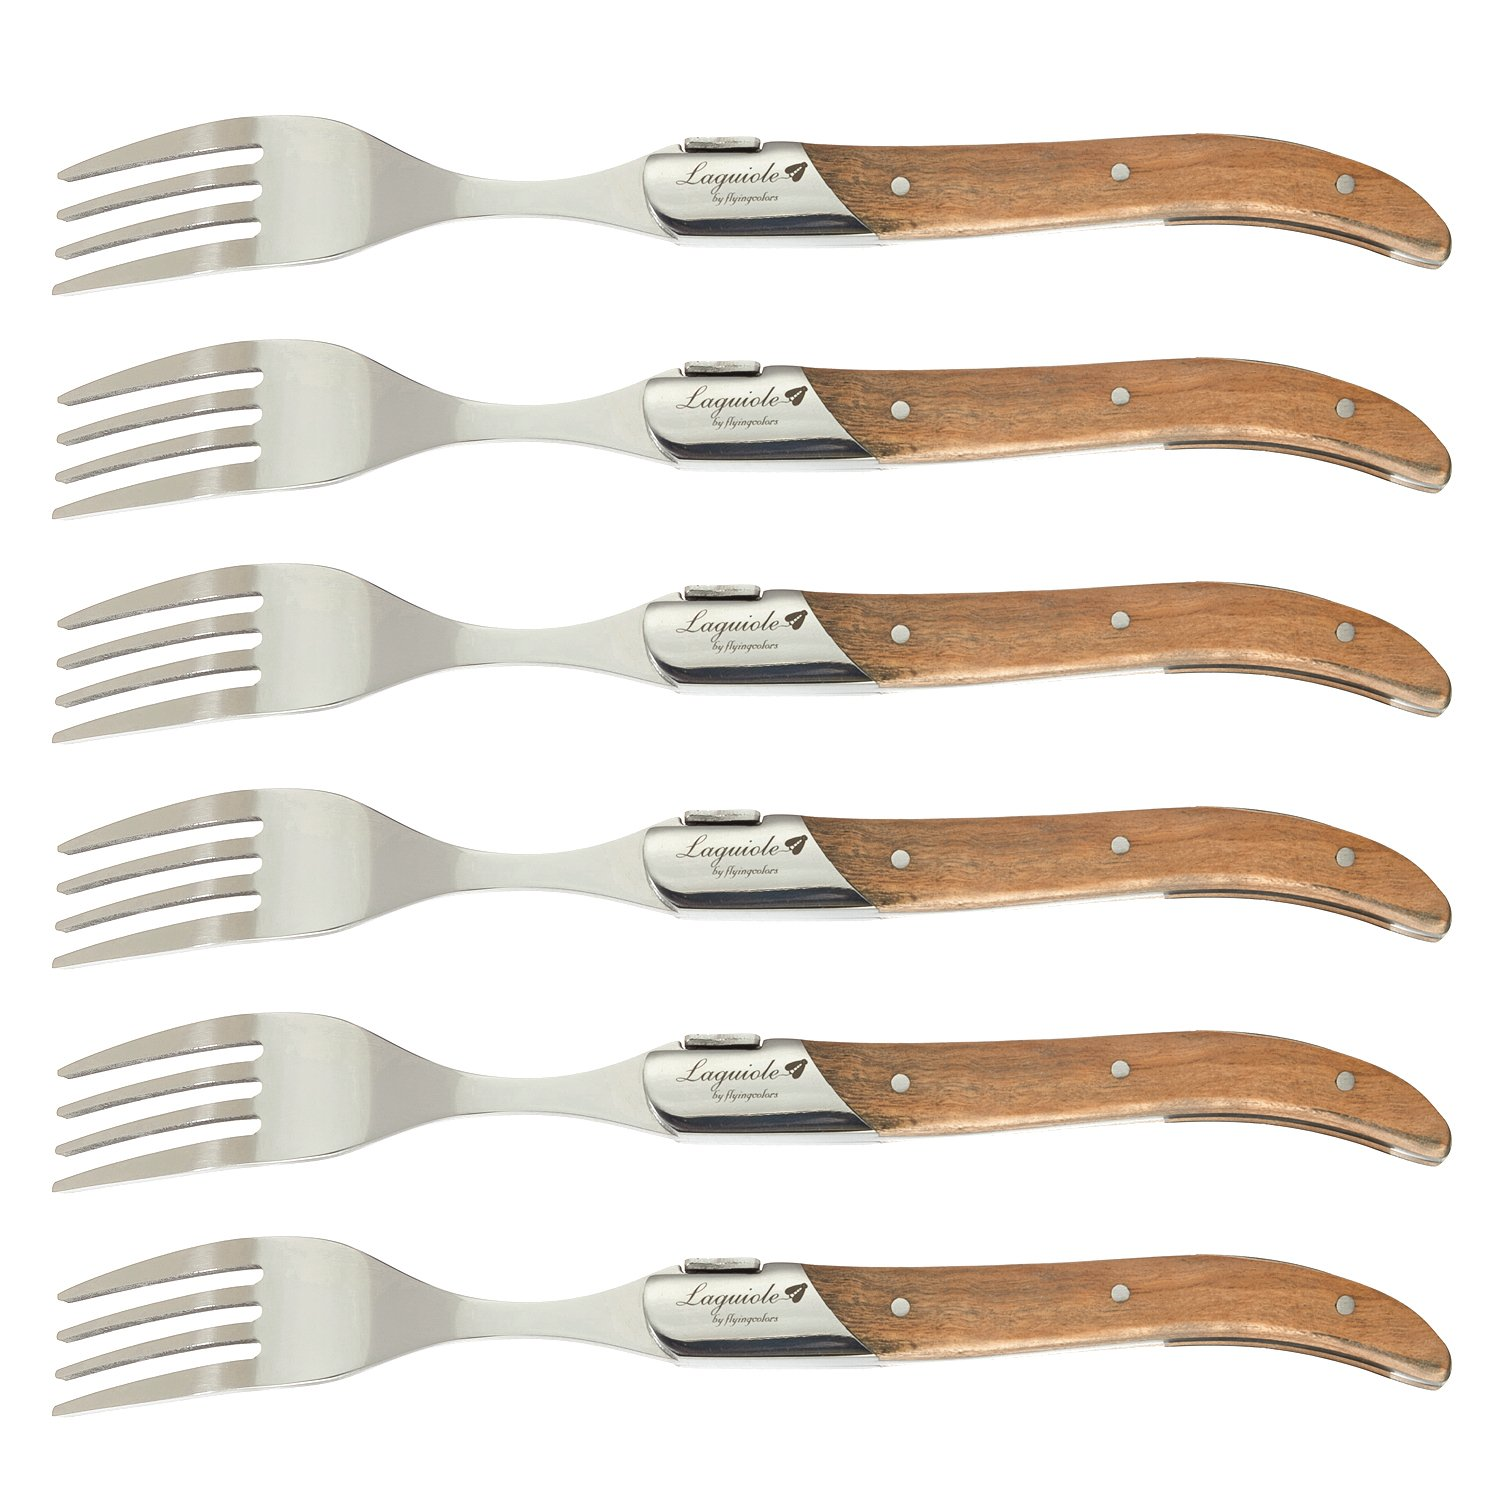 FlyingColors Laguiole Stainless Steel Fork Set, Olive Wood Handle, Gift Box, 6 Pieces